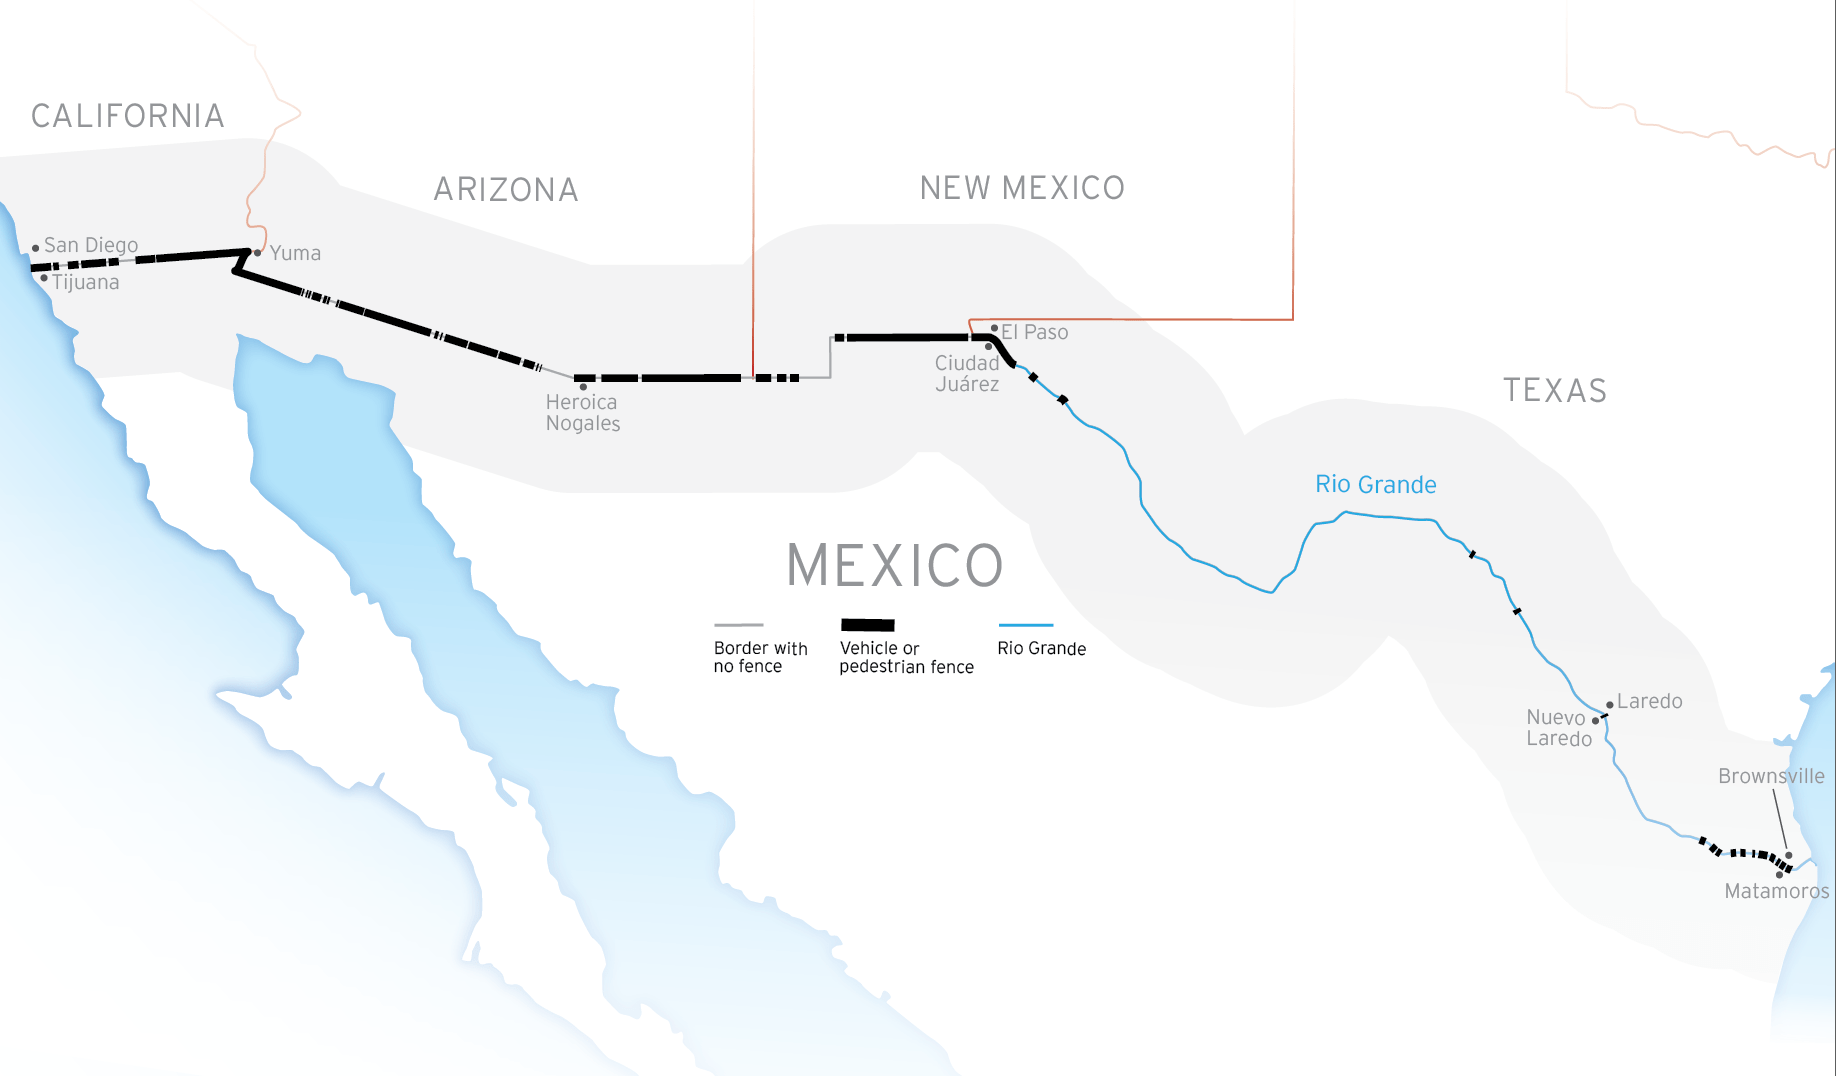 Map showing the composition of the border: Border with no fence, vehicle or pedestrian fence, and the Rio Grande.